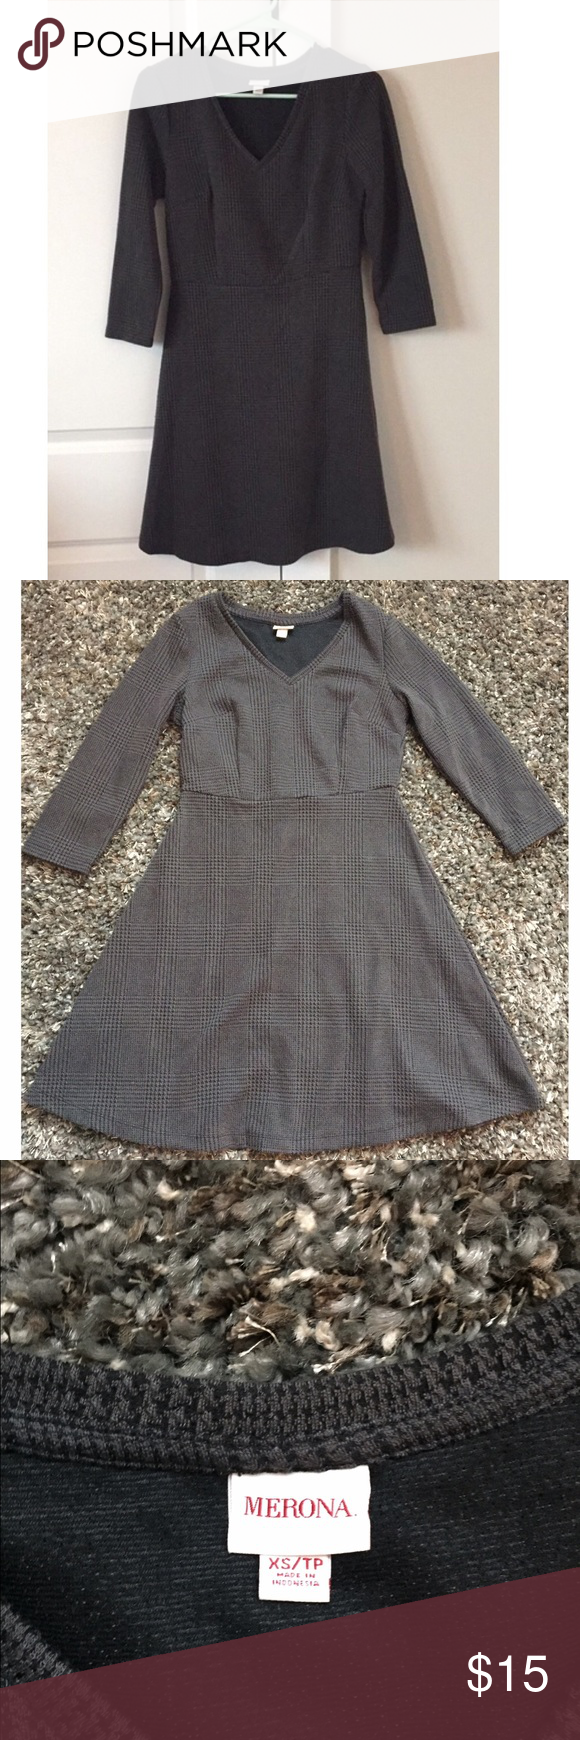 Gray and black houndstooth dress Like new condition. Perfect dress for fall/winter. Merona Dresses Long Sleeve